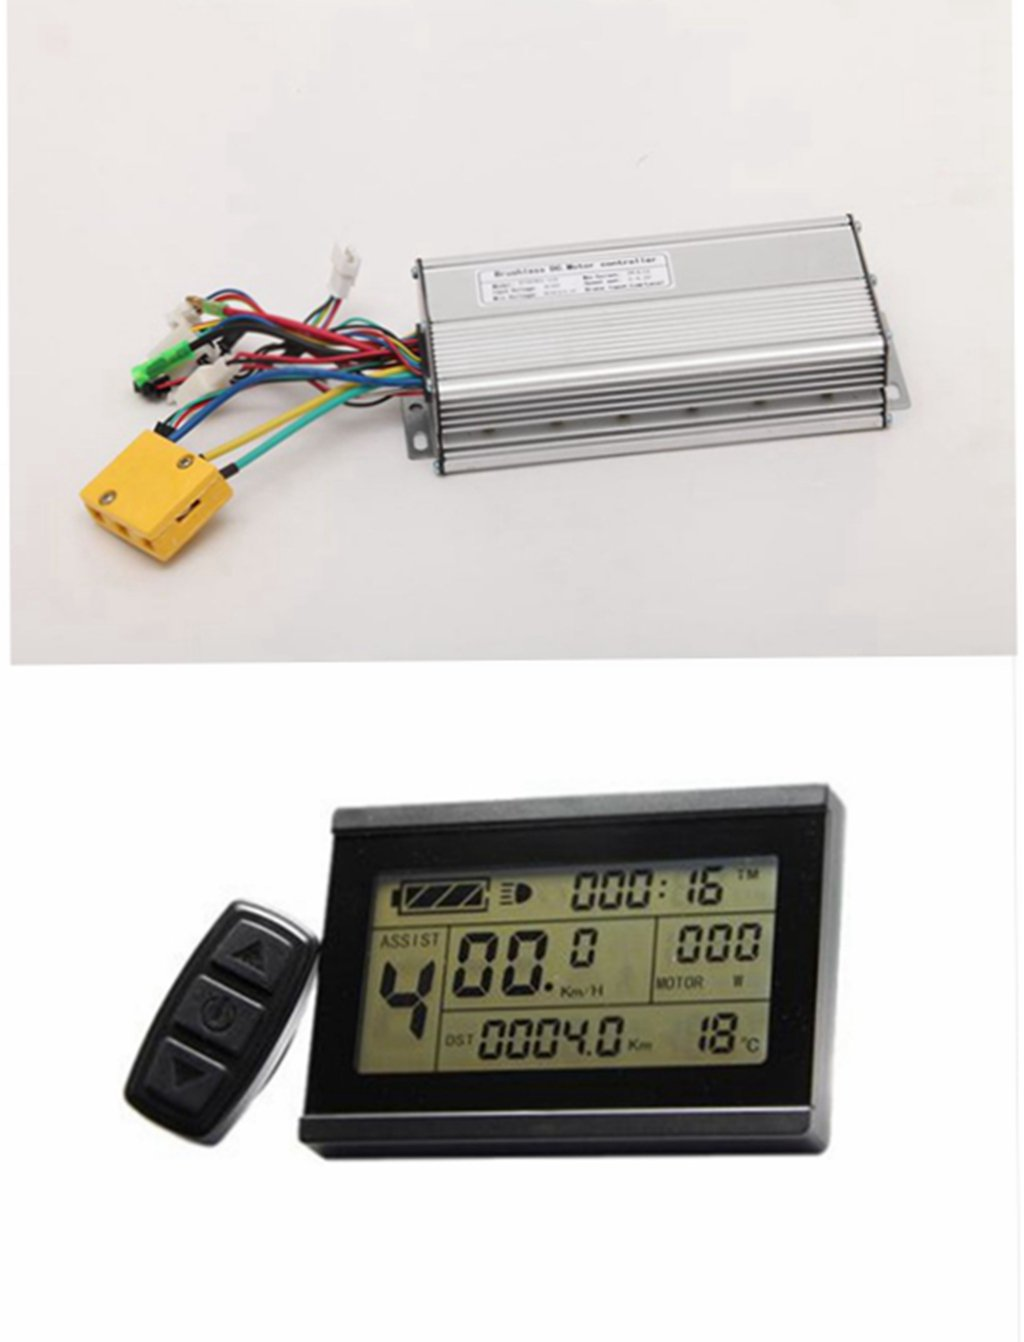 NBPOWER 48V 1500W 35A Brushless DC Motor Controller Ebike Controller +KT-LCD3 Display One Set,used for 1500W Ebike Kit.